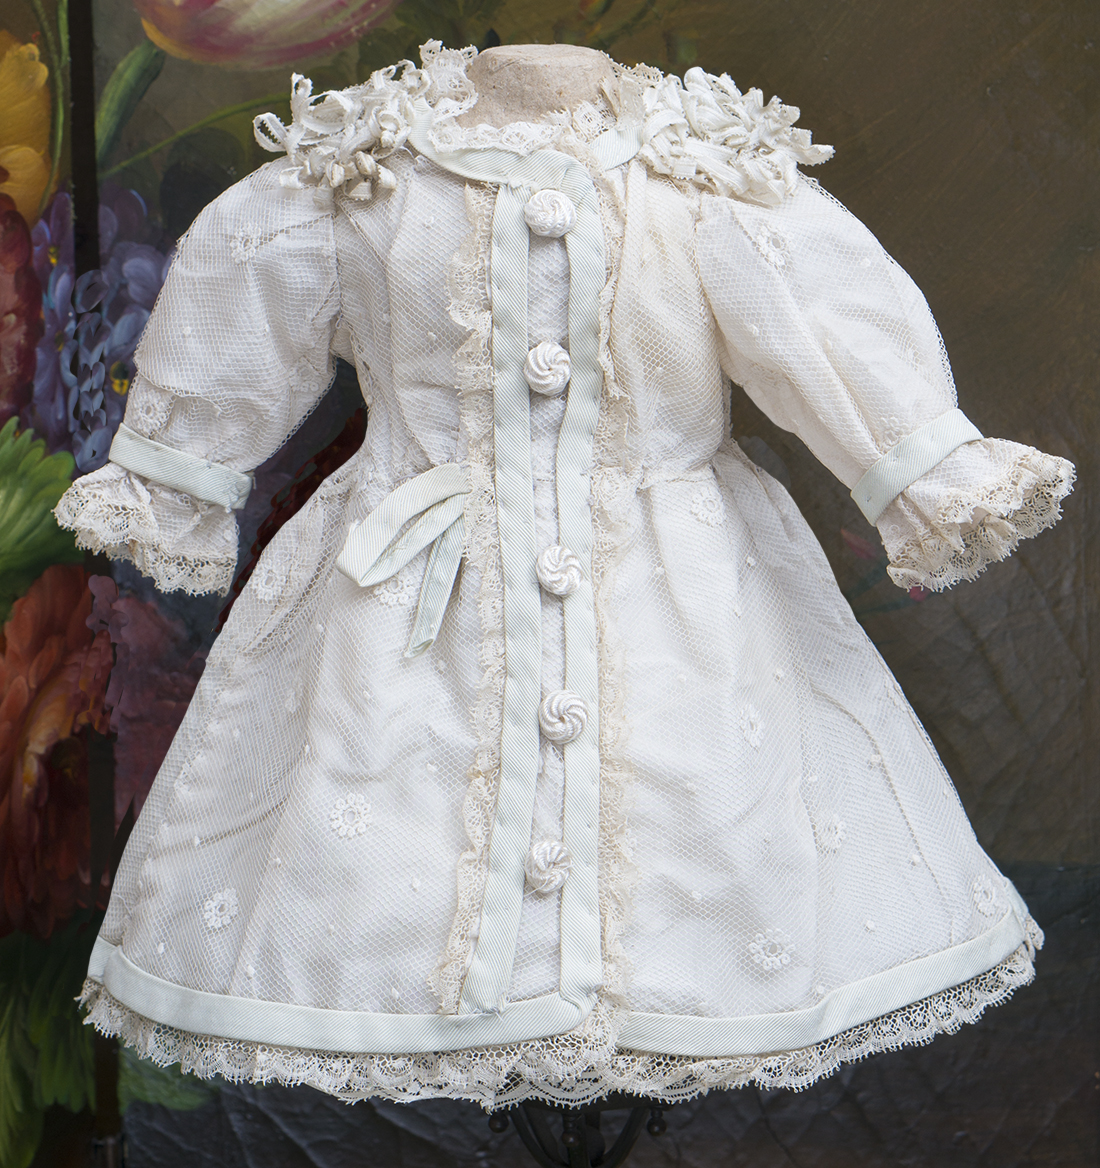 Antique dress for doll 15-16 in